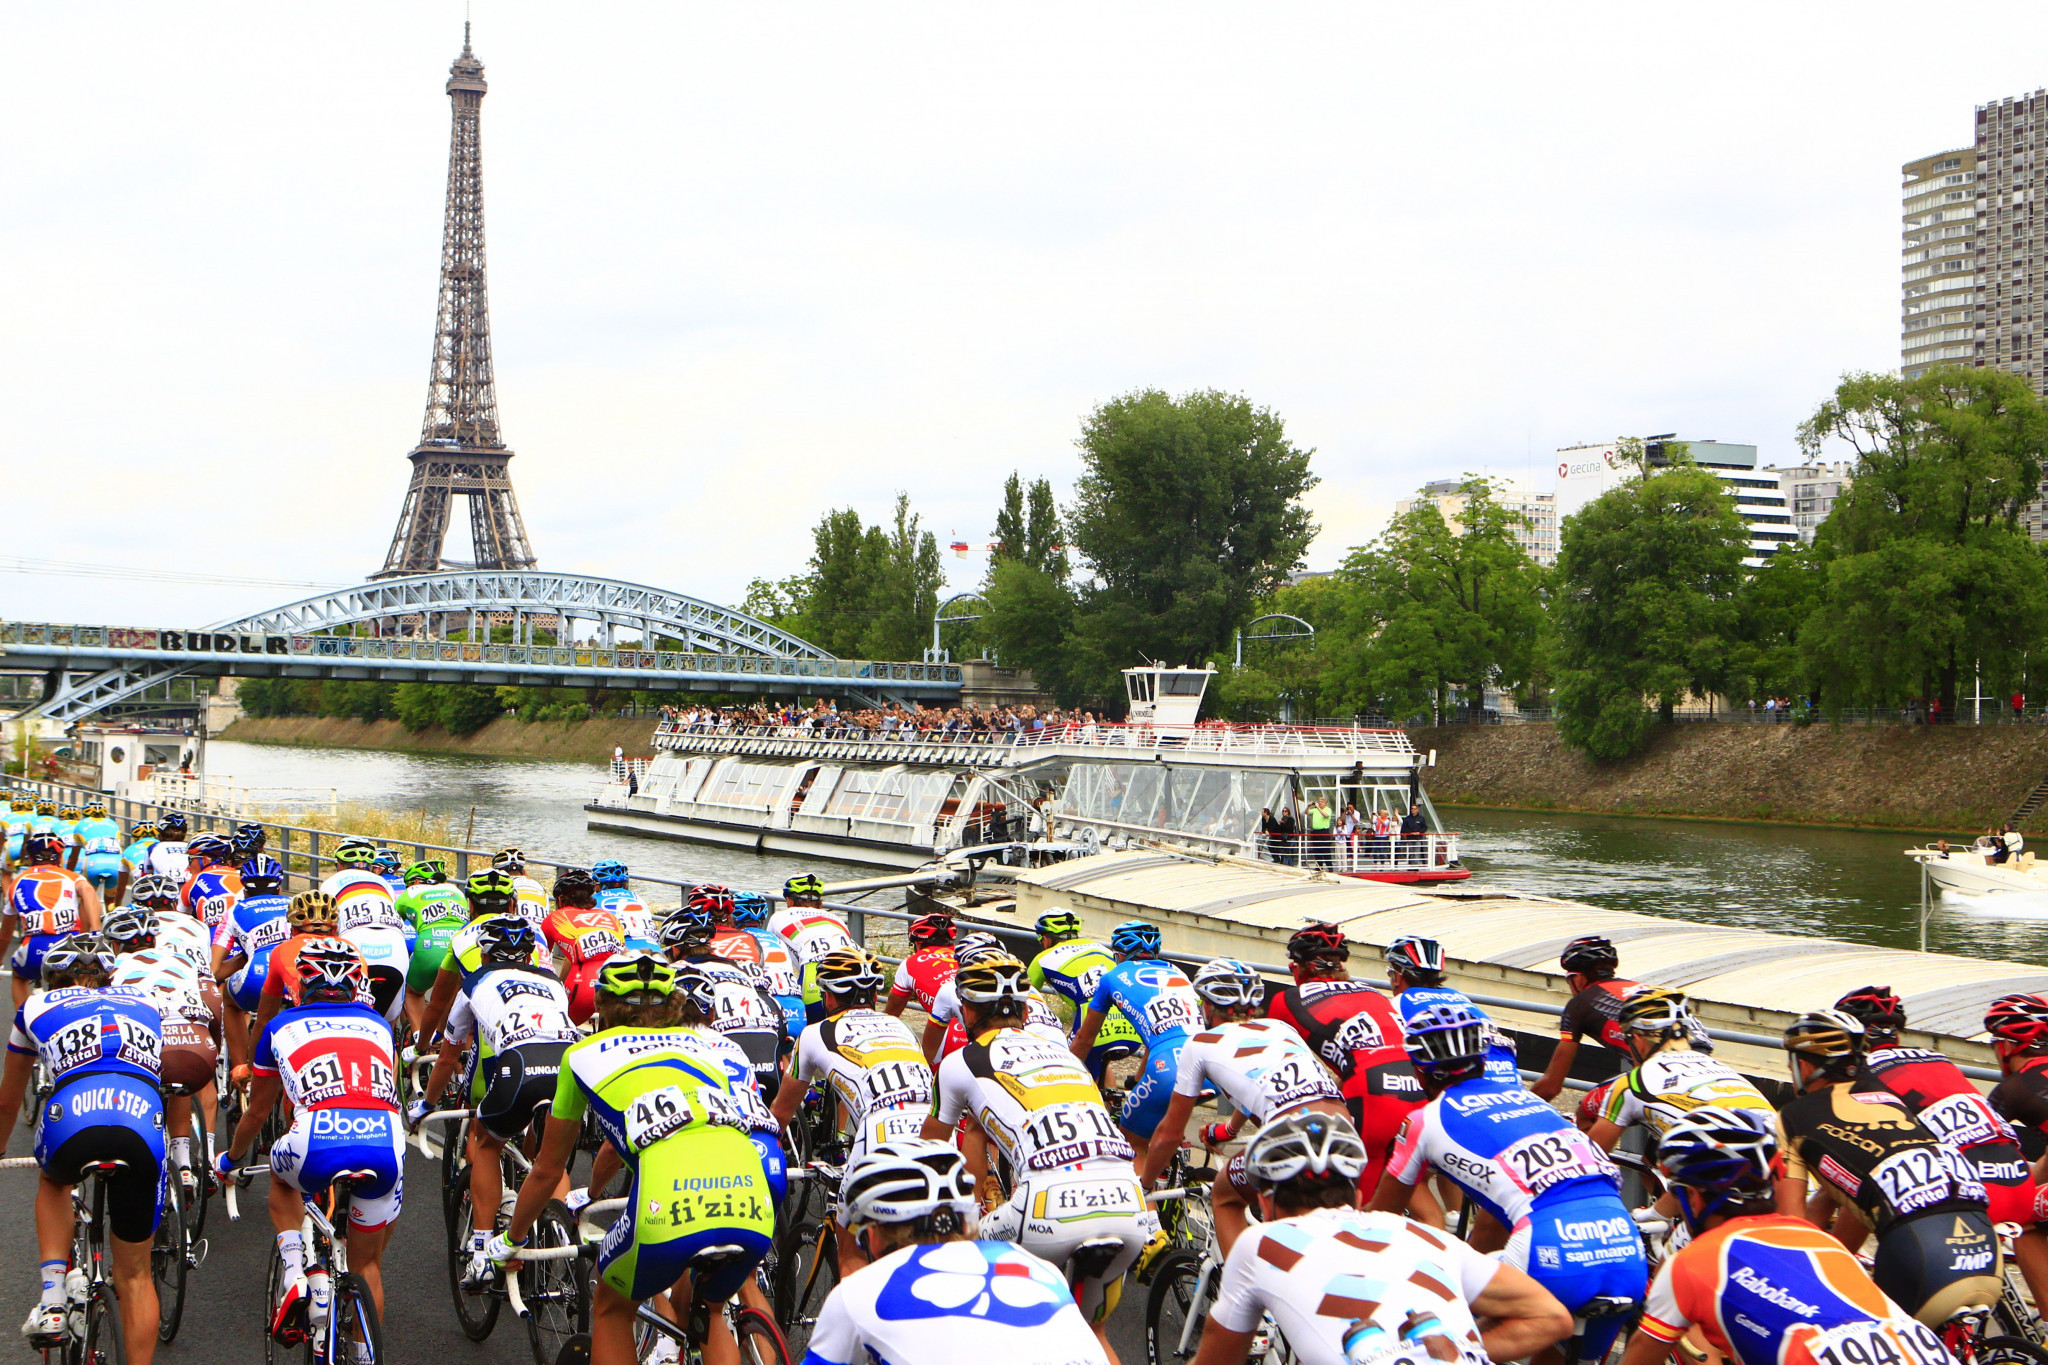 Tour de France moved to new dates in August and September